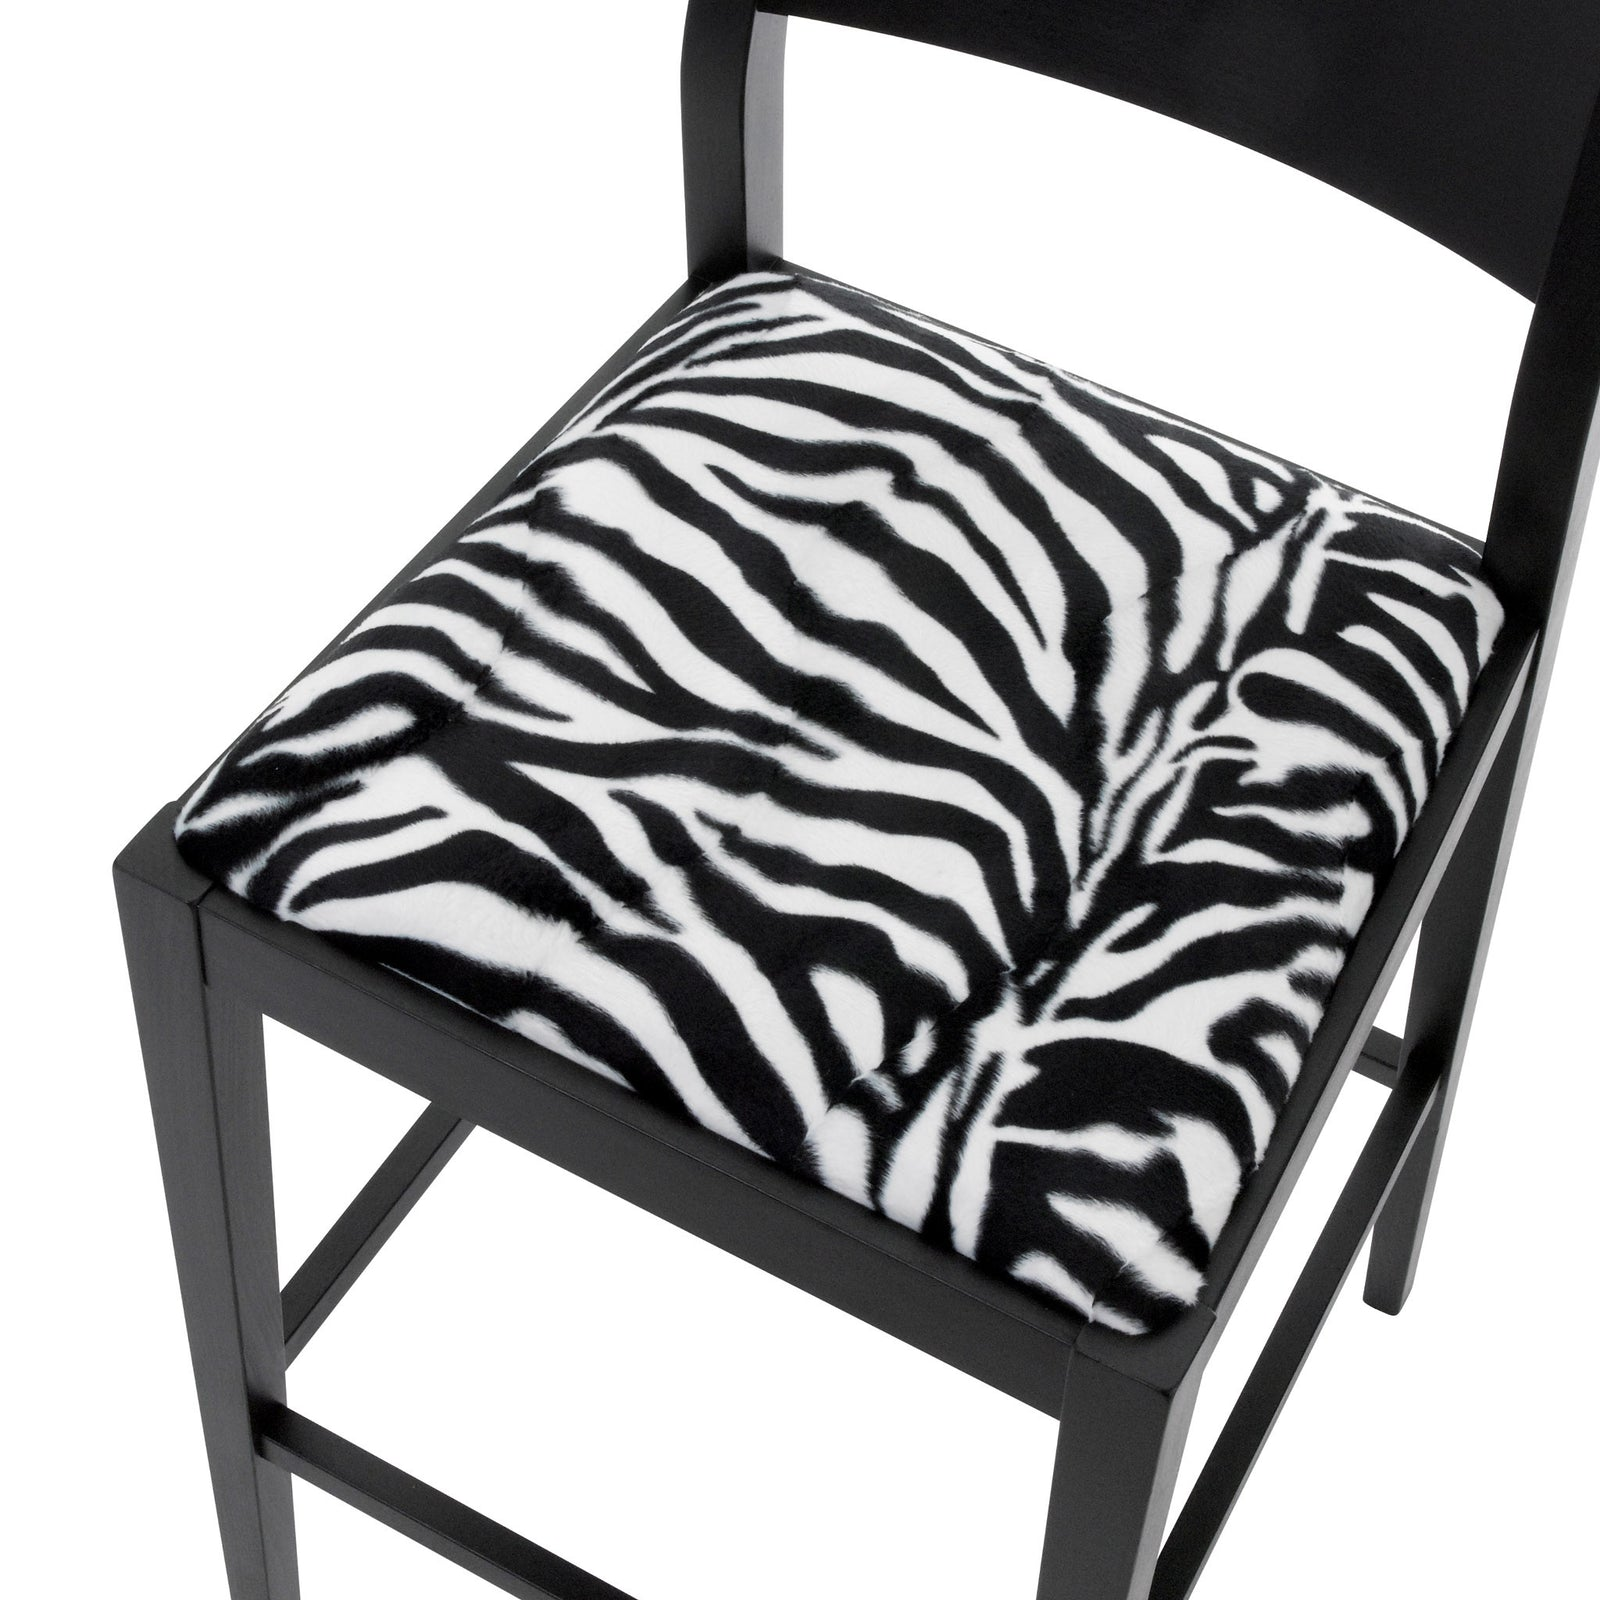 Seat view of the James designer bar stool upholstered in Zebra Faux fur and finished in Matte Black.